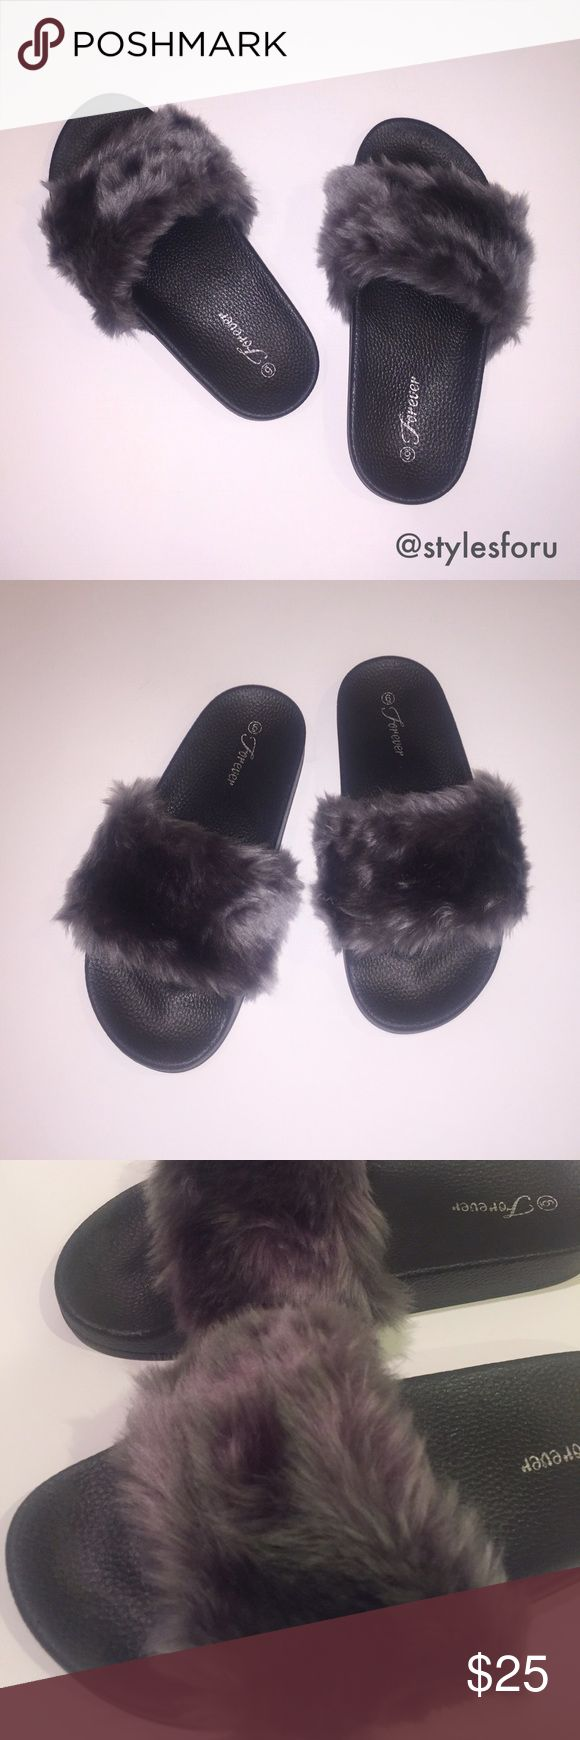 "NWT. Dark grey fuzzy slippers NWT. Dark grey fuzzy slippers. Super soft material and comfort. Non slip bottom. About 1"" platform. True to size. Sorry, no trades. Forever Shoes Slippers"